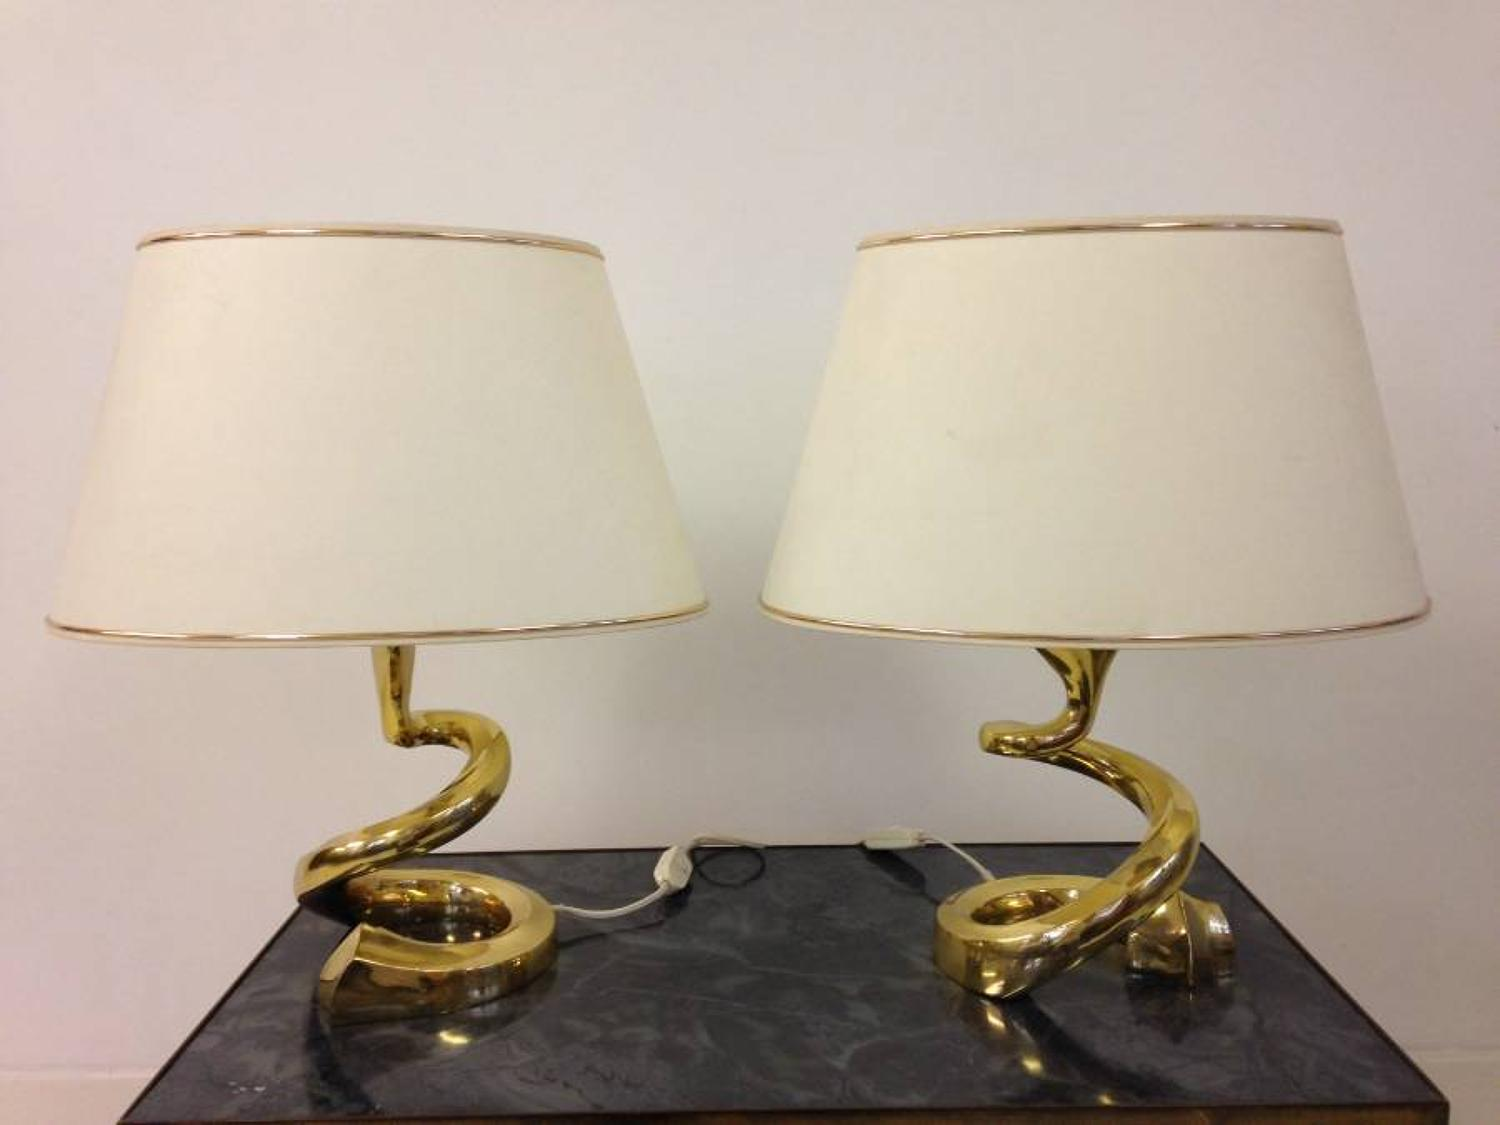 A pair of 1970s gilt brass lamps